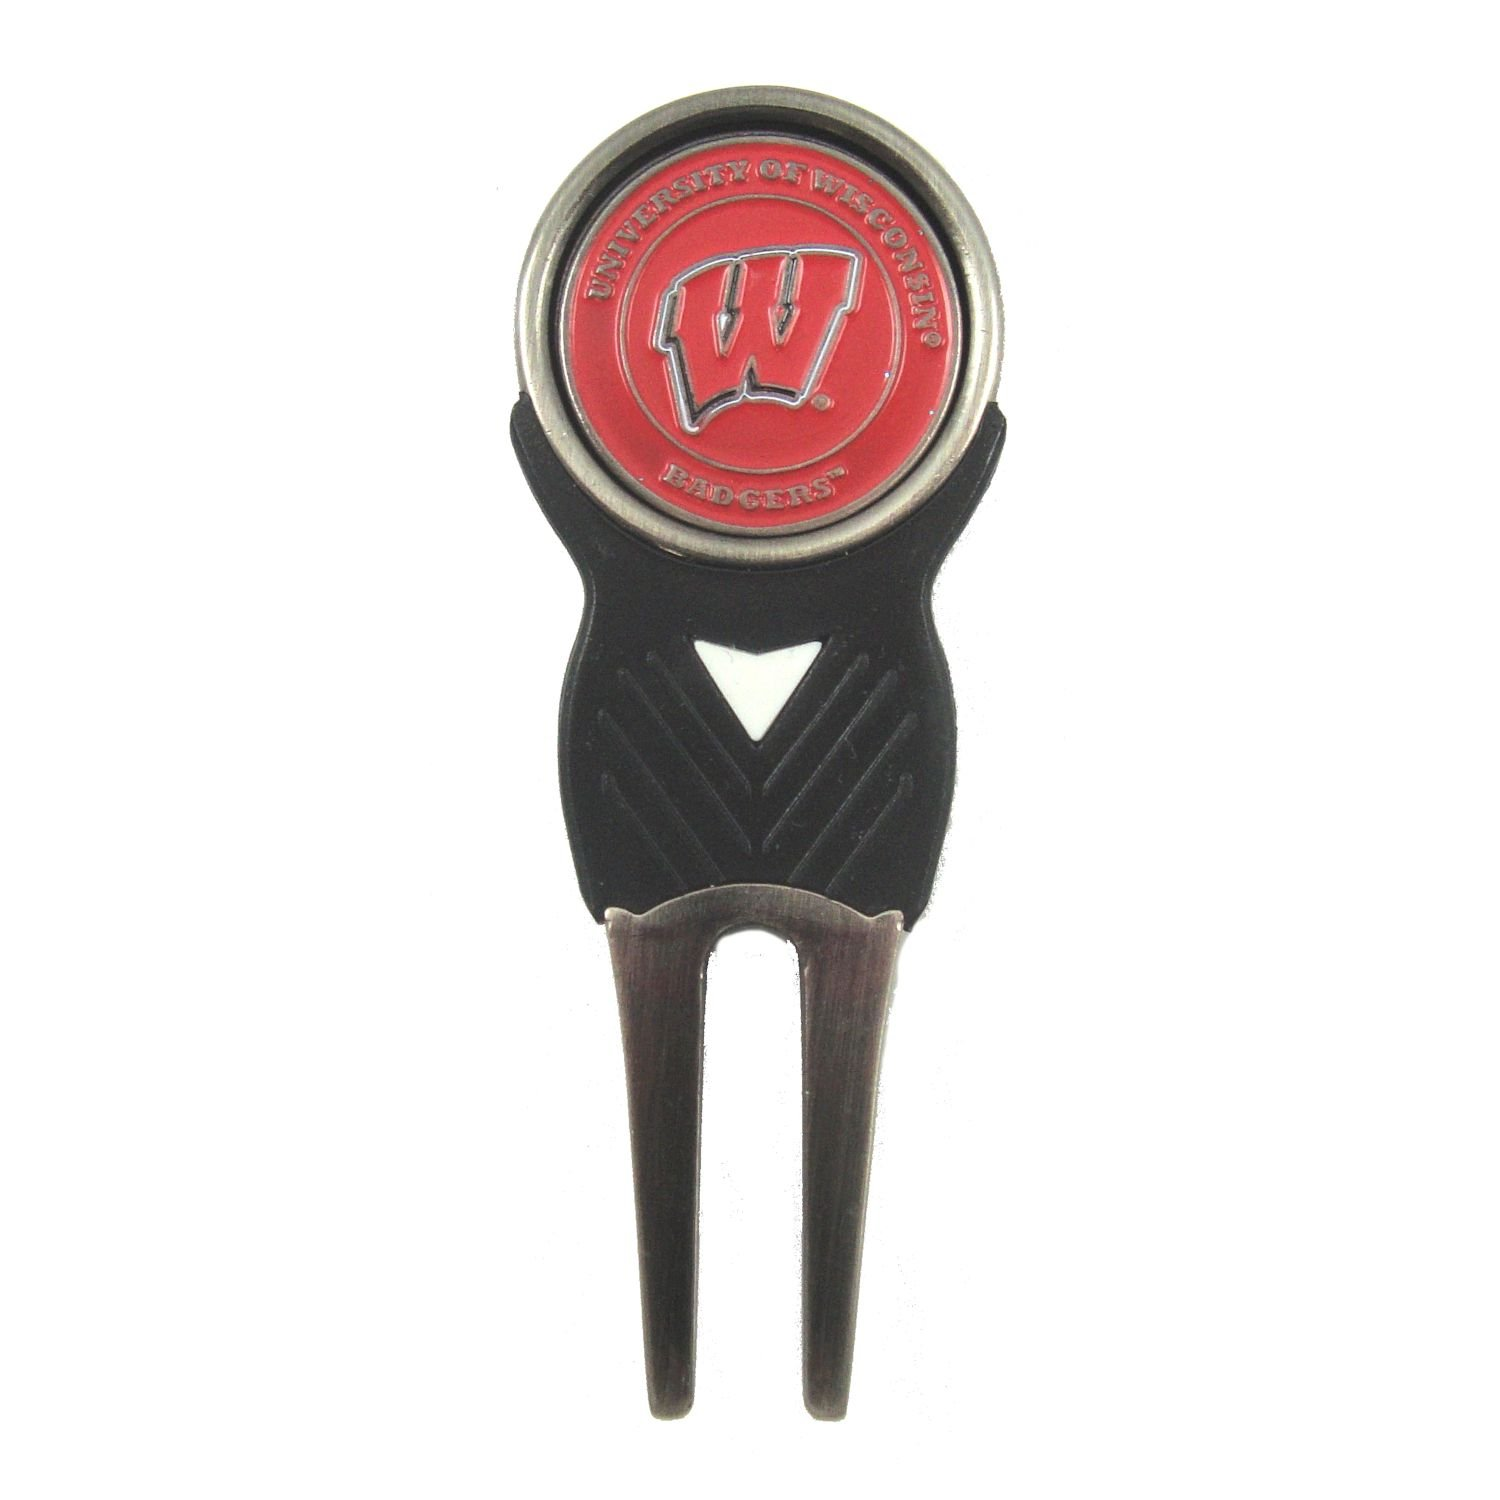 Wisconsin Badgers Divot Tool With Double Sidedロゴゴルフボールマーカー   B000ZFILXS